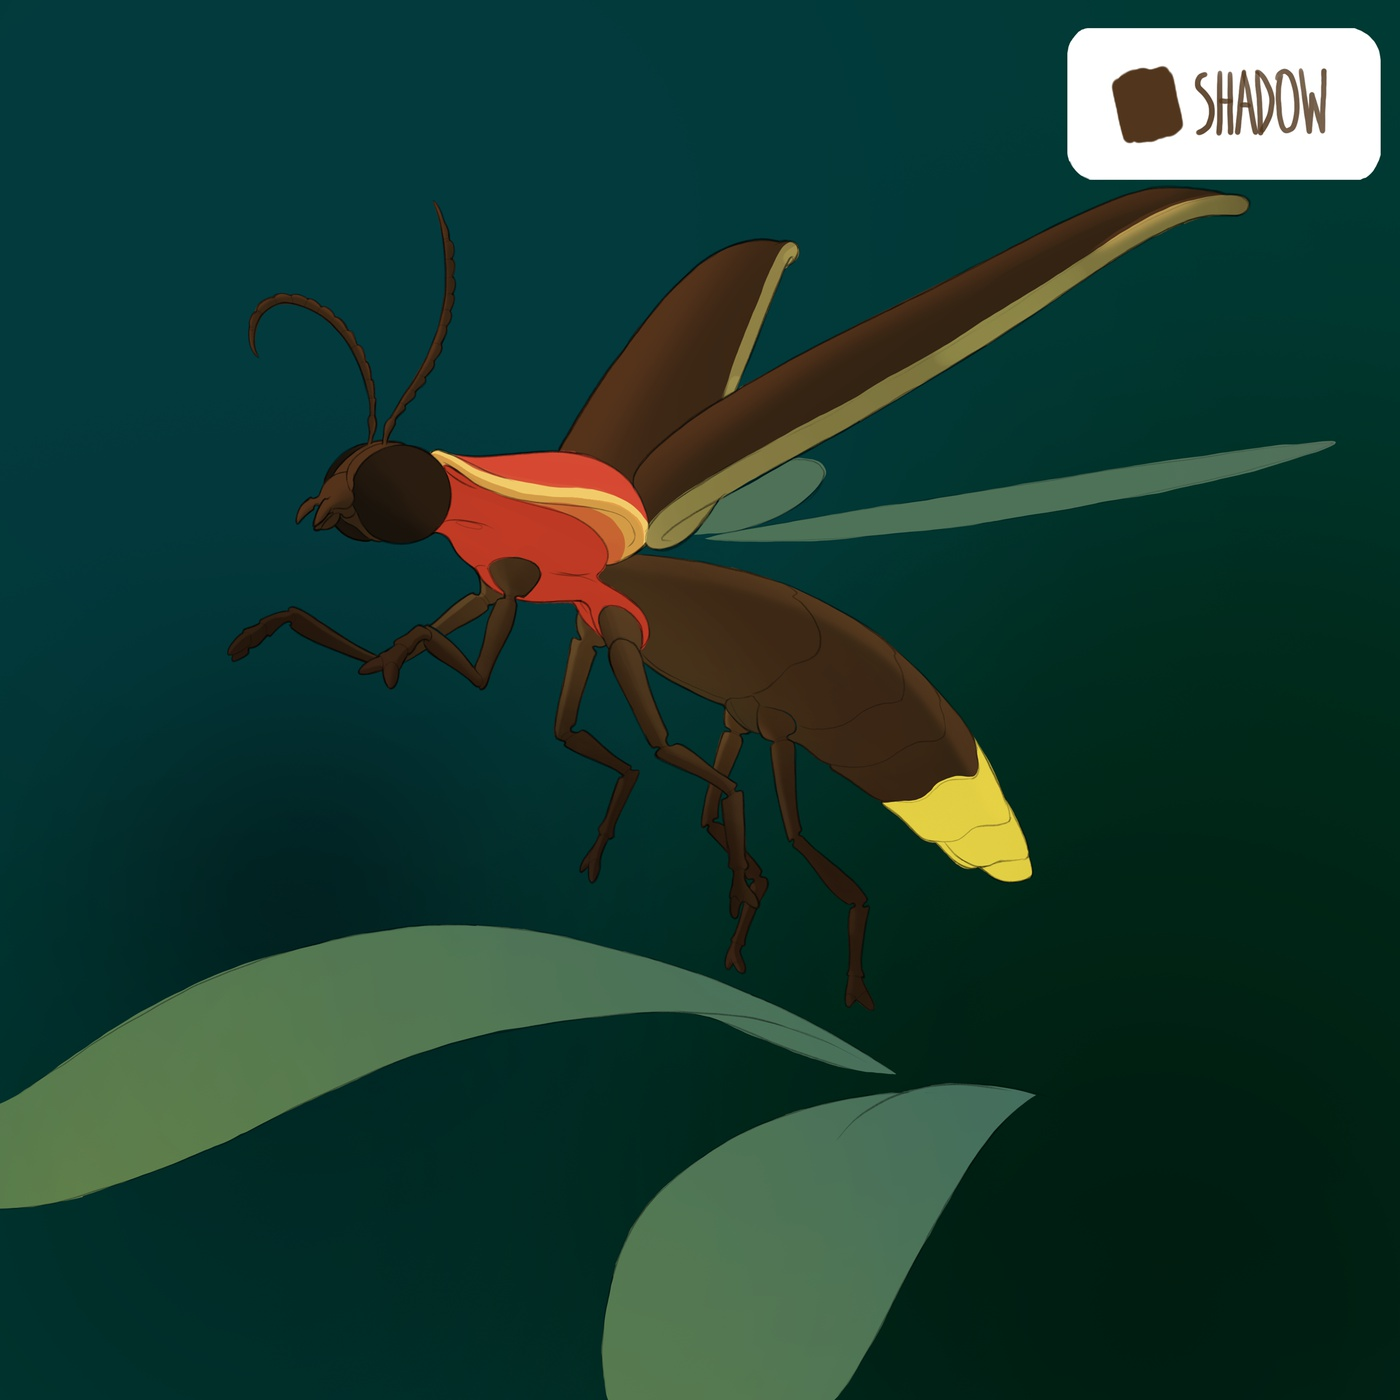 flat colour wash glowing insect creature design model render glow effect photoshop